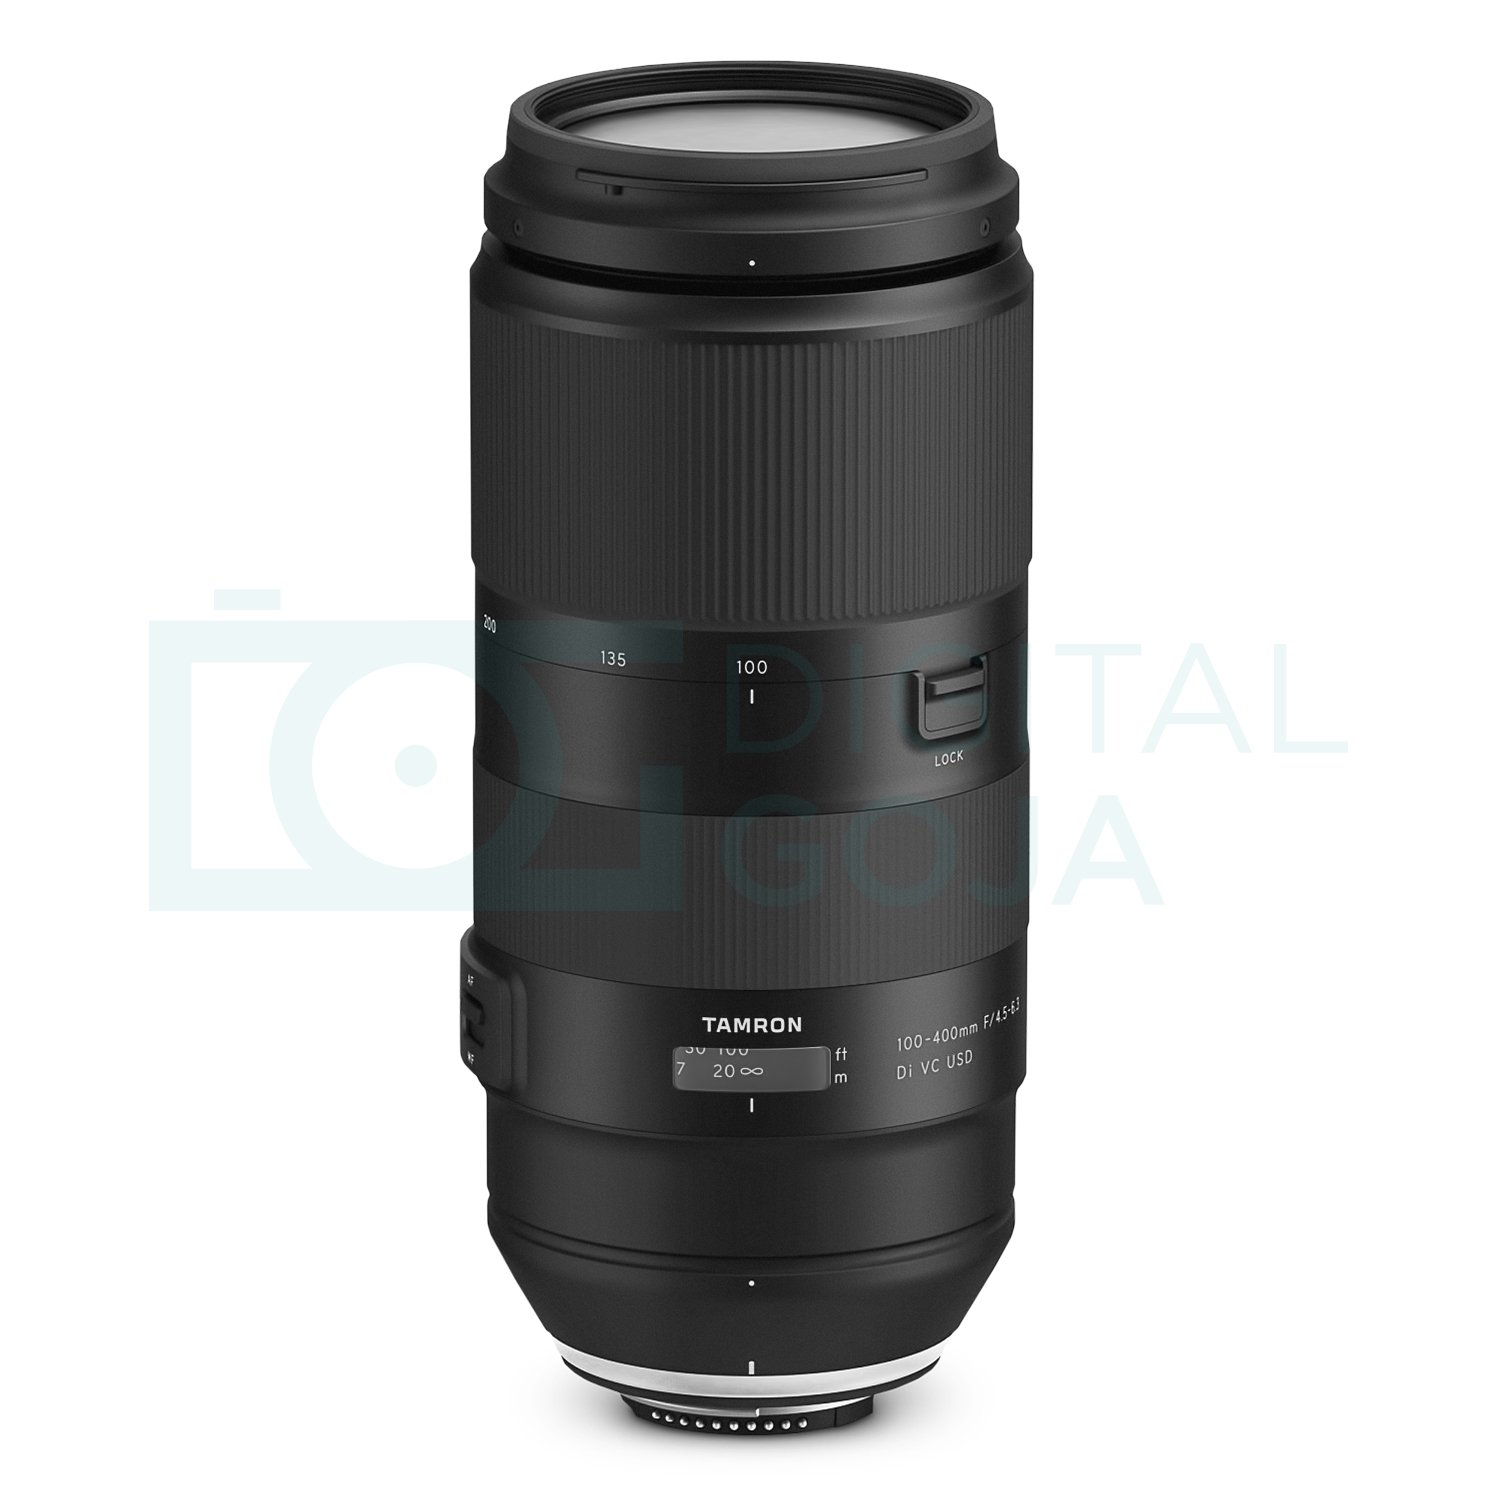 Tamron 100-400mm f/4.5-6.3 Di VC USD Lens for Canon EF w/Advanced Photo and Travel Bundle (Tamron 6 Year Limited USA Warranty) by Tamron (Image #3)